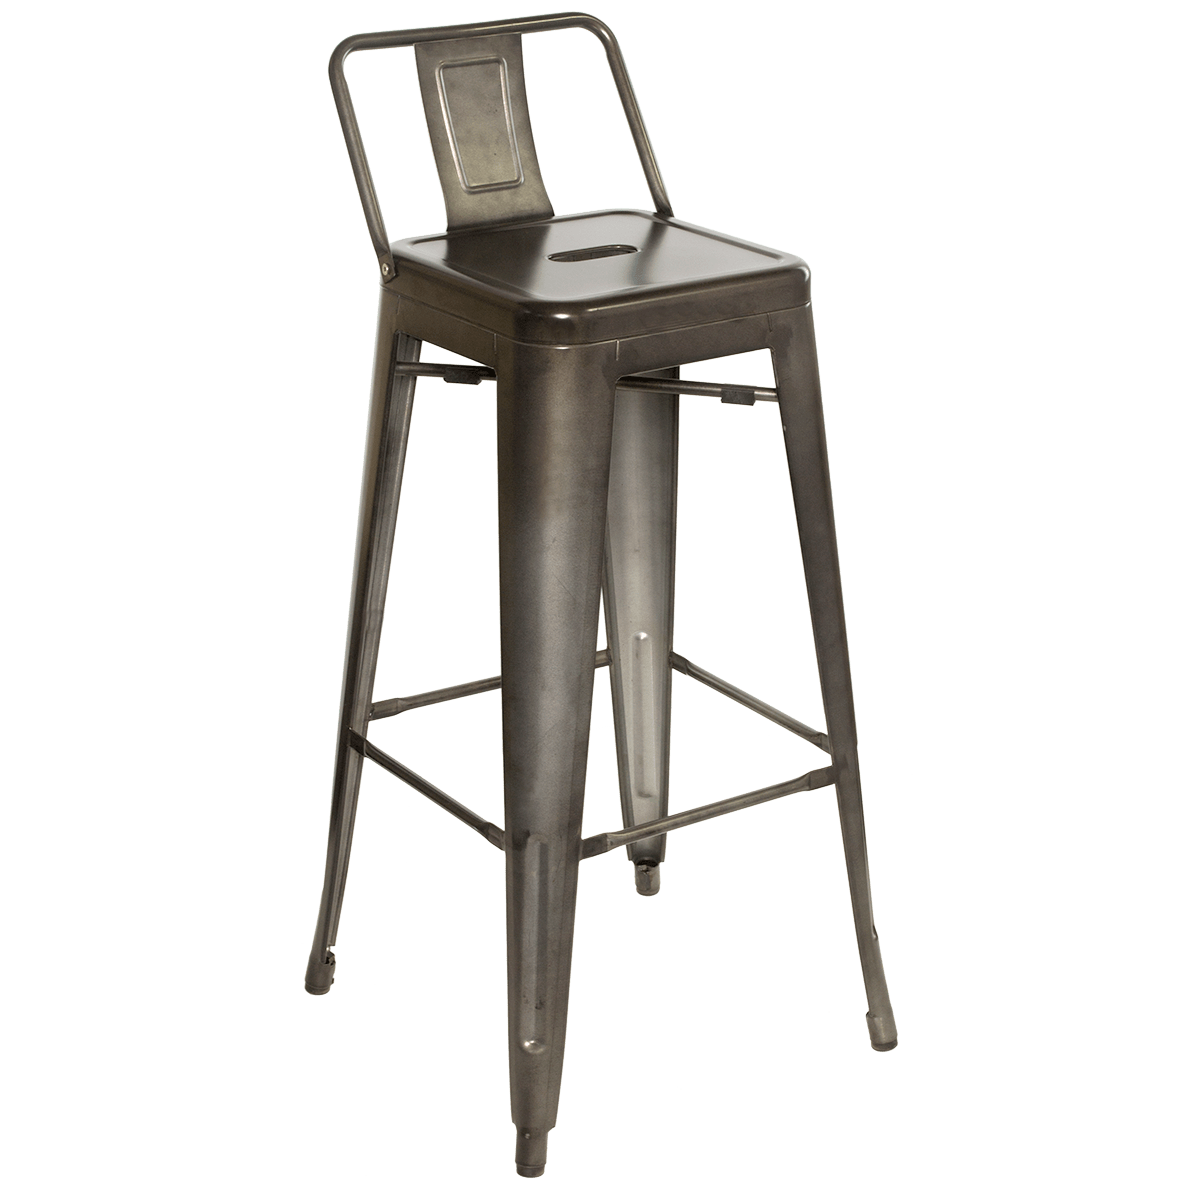 Galvanized Steel Chairs Industrial Bar Stools Millennium Seating Usa